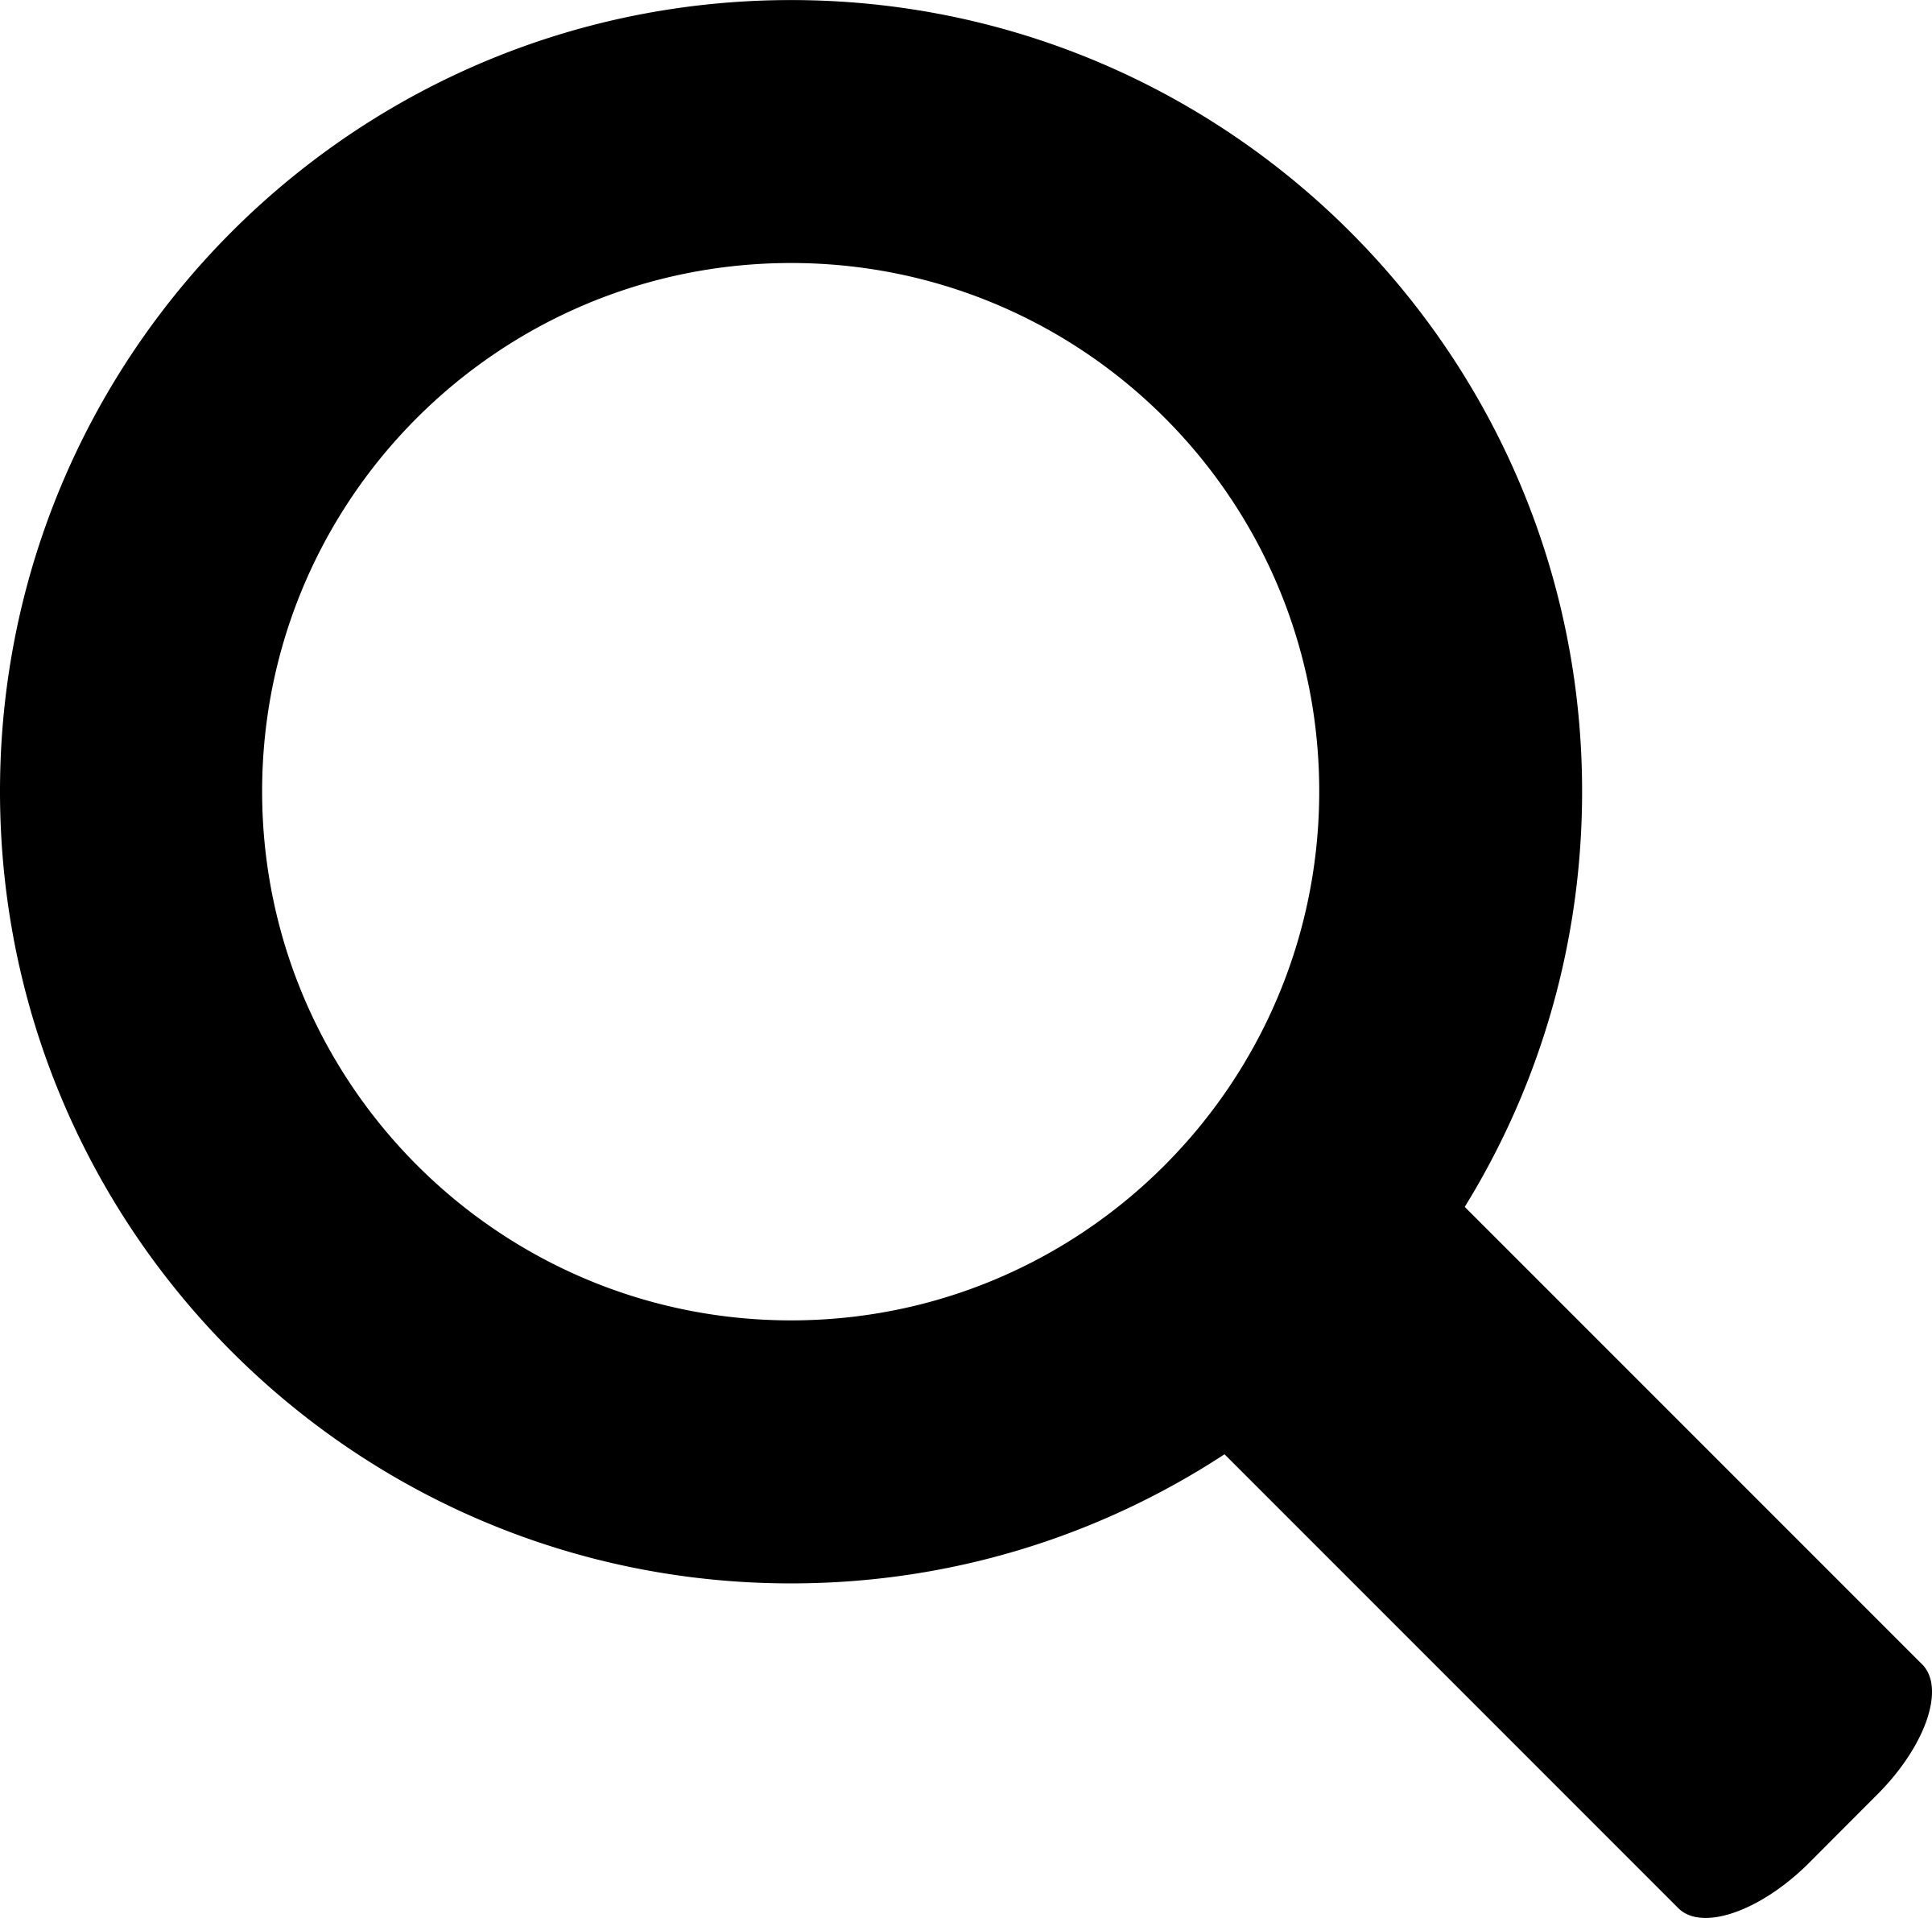 Search logo png. Simple bold icon transparent